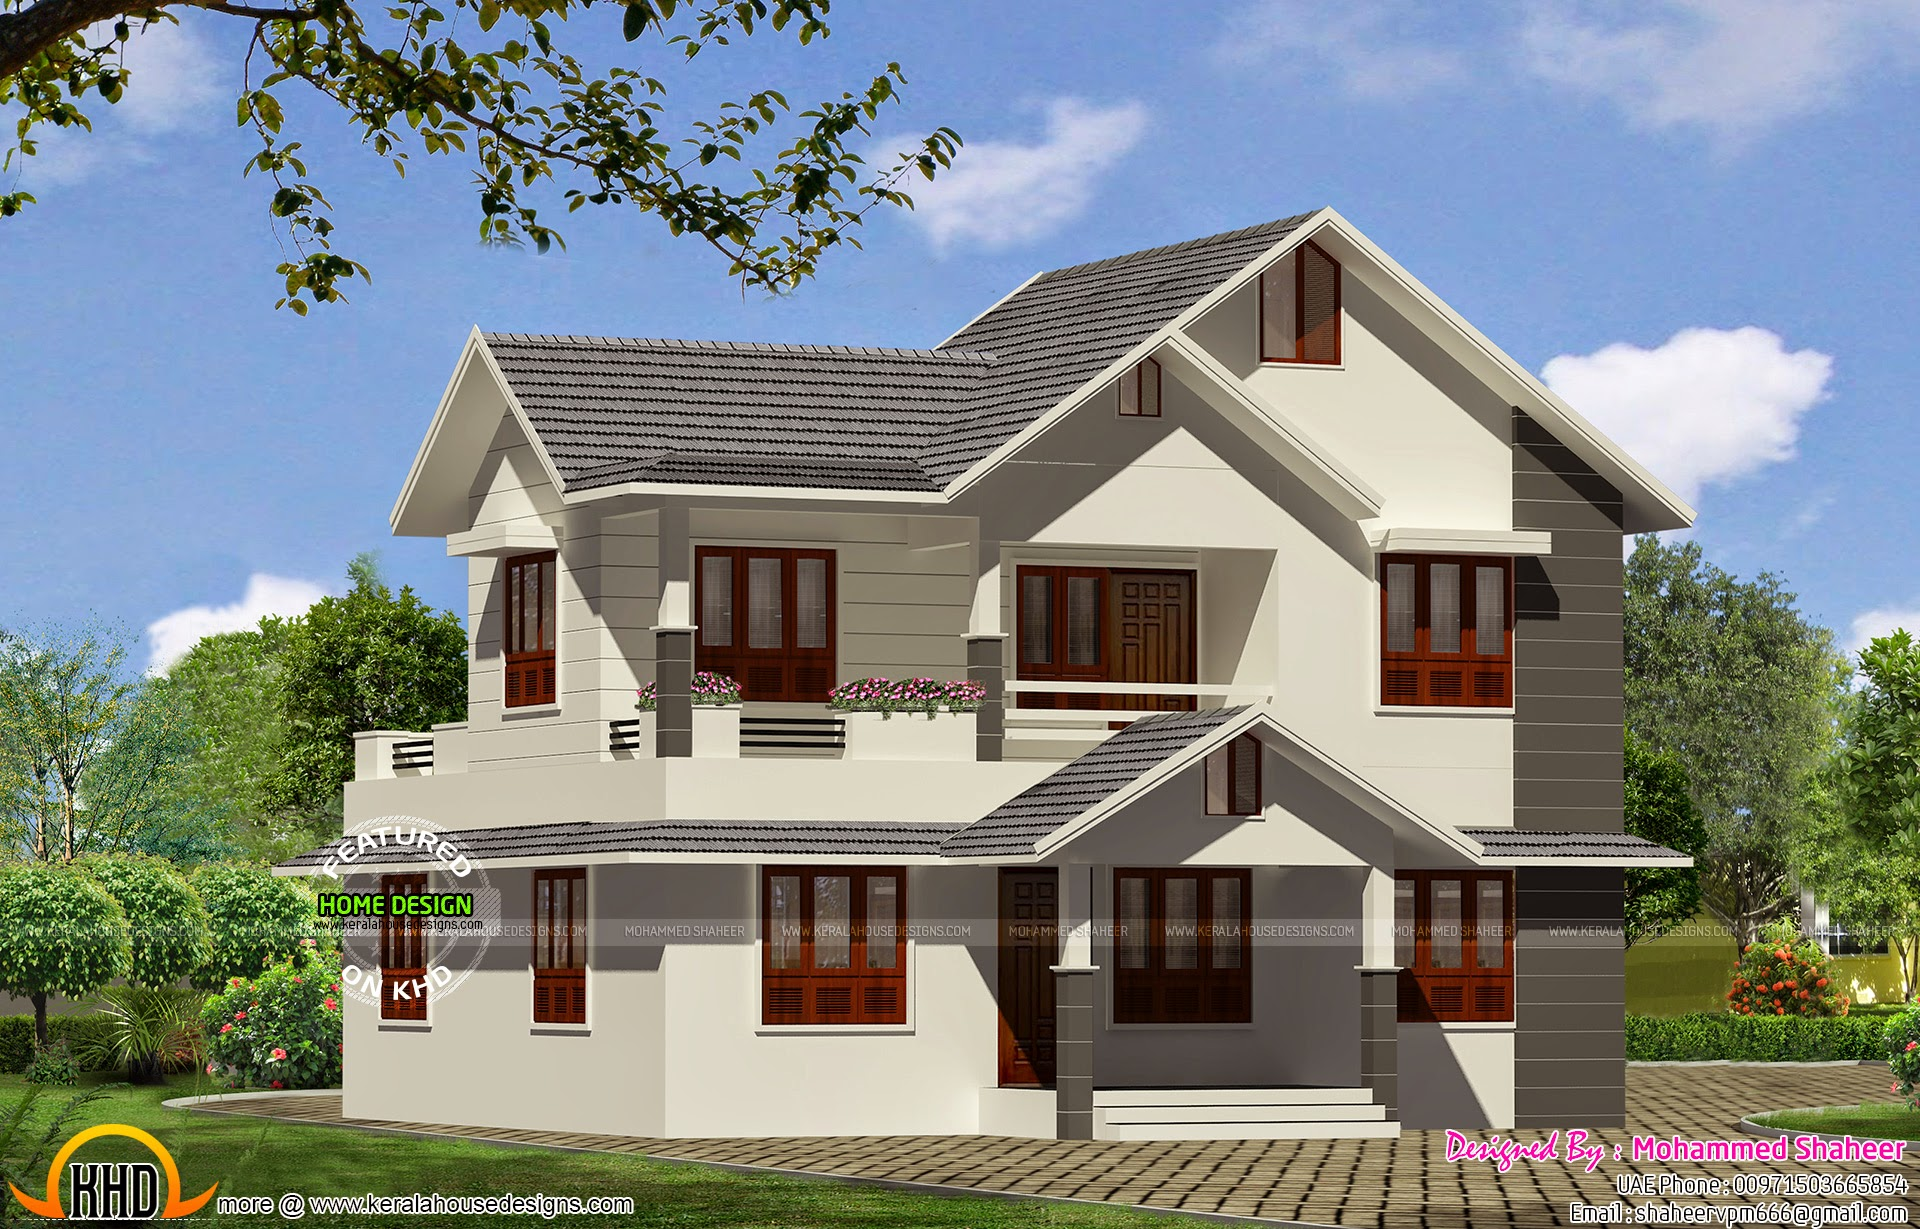 modern house taper roof kerala home design and floor plans